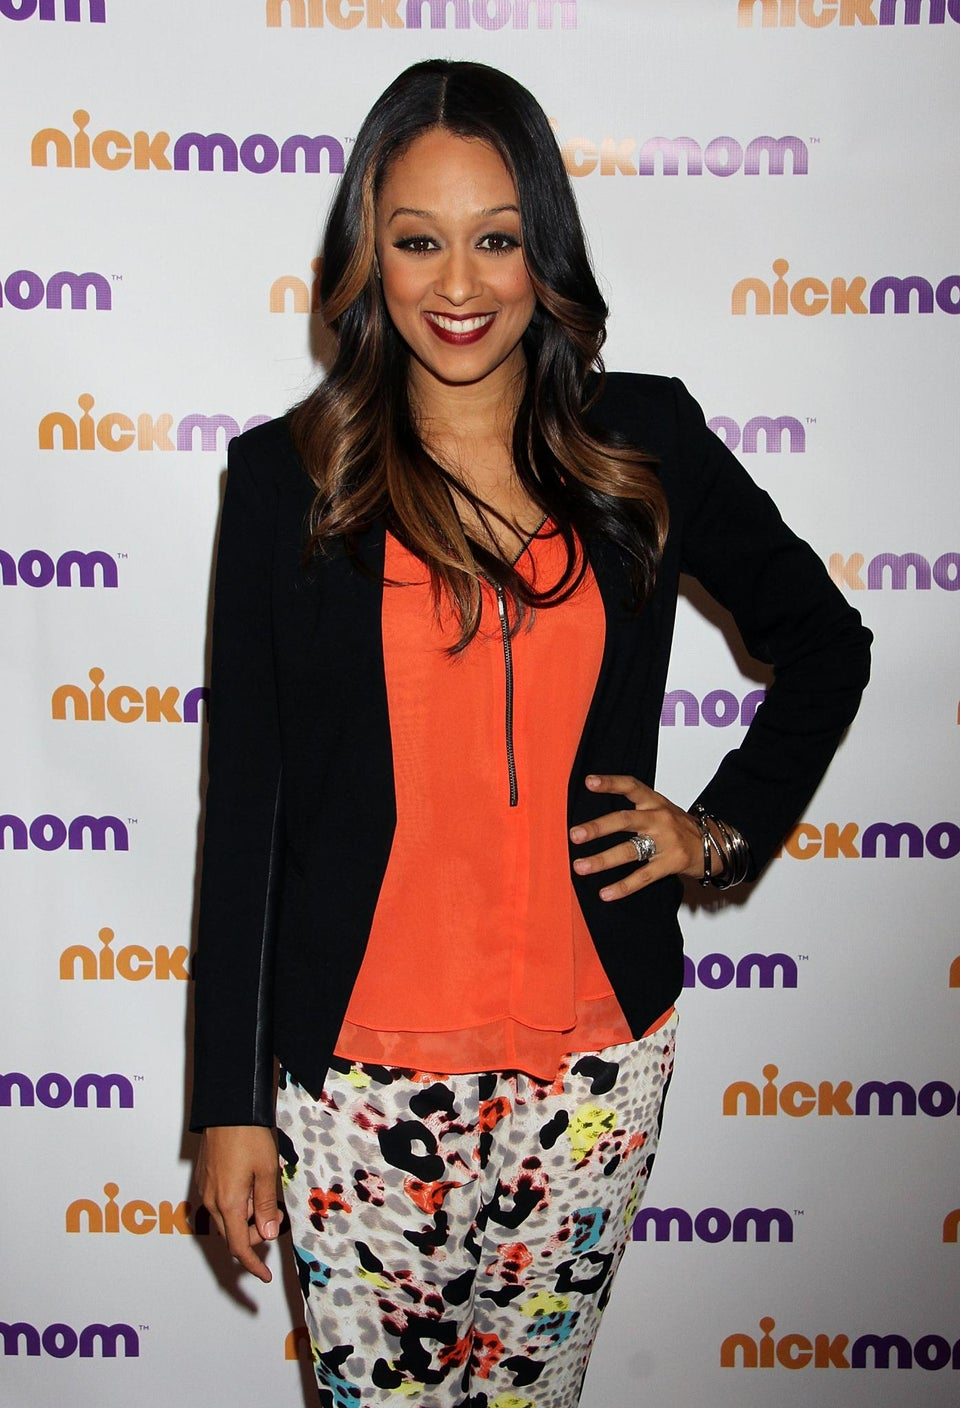 Tia Mowry Reveals Plan for Second Baby